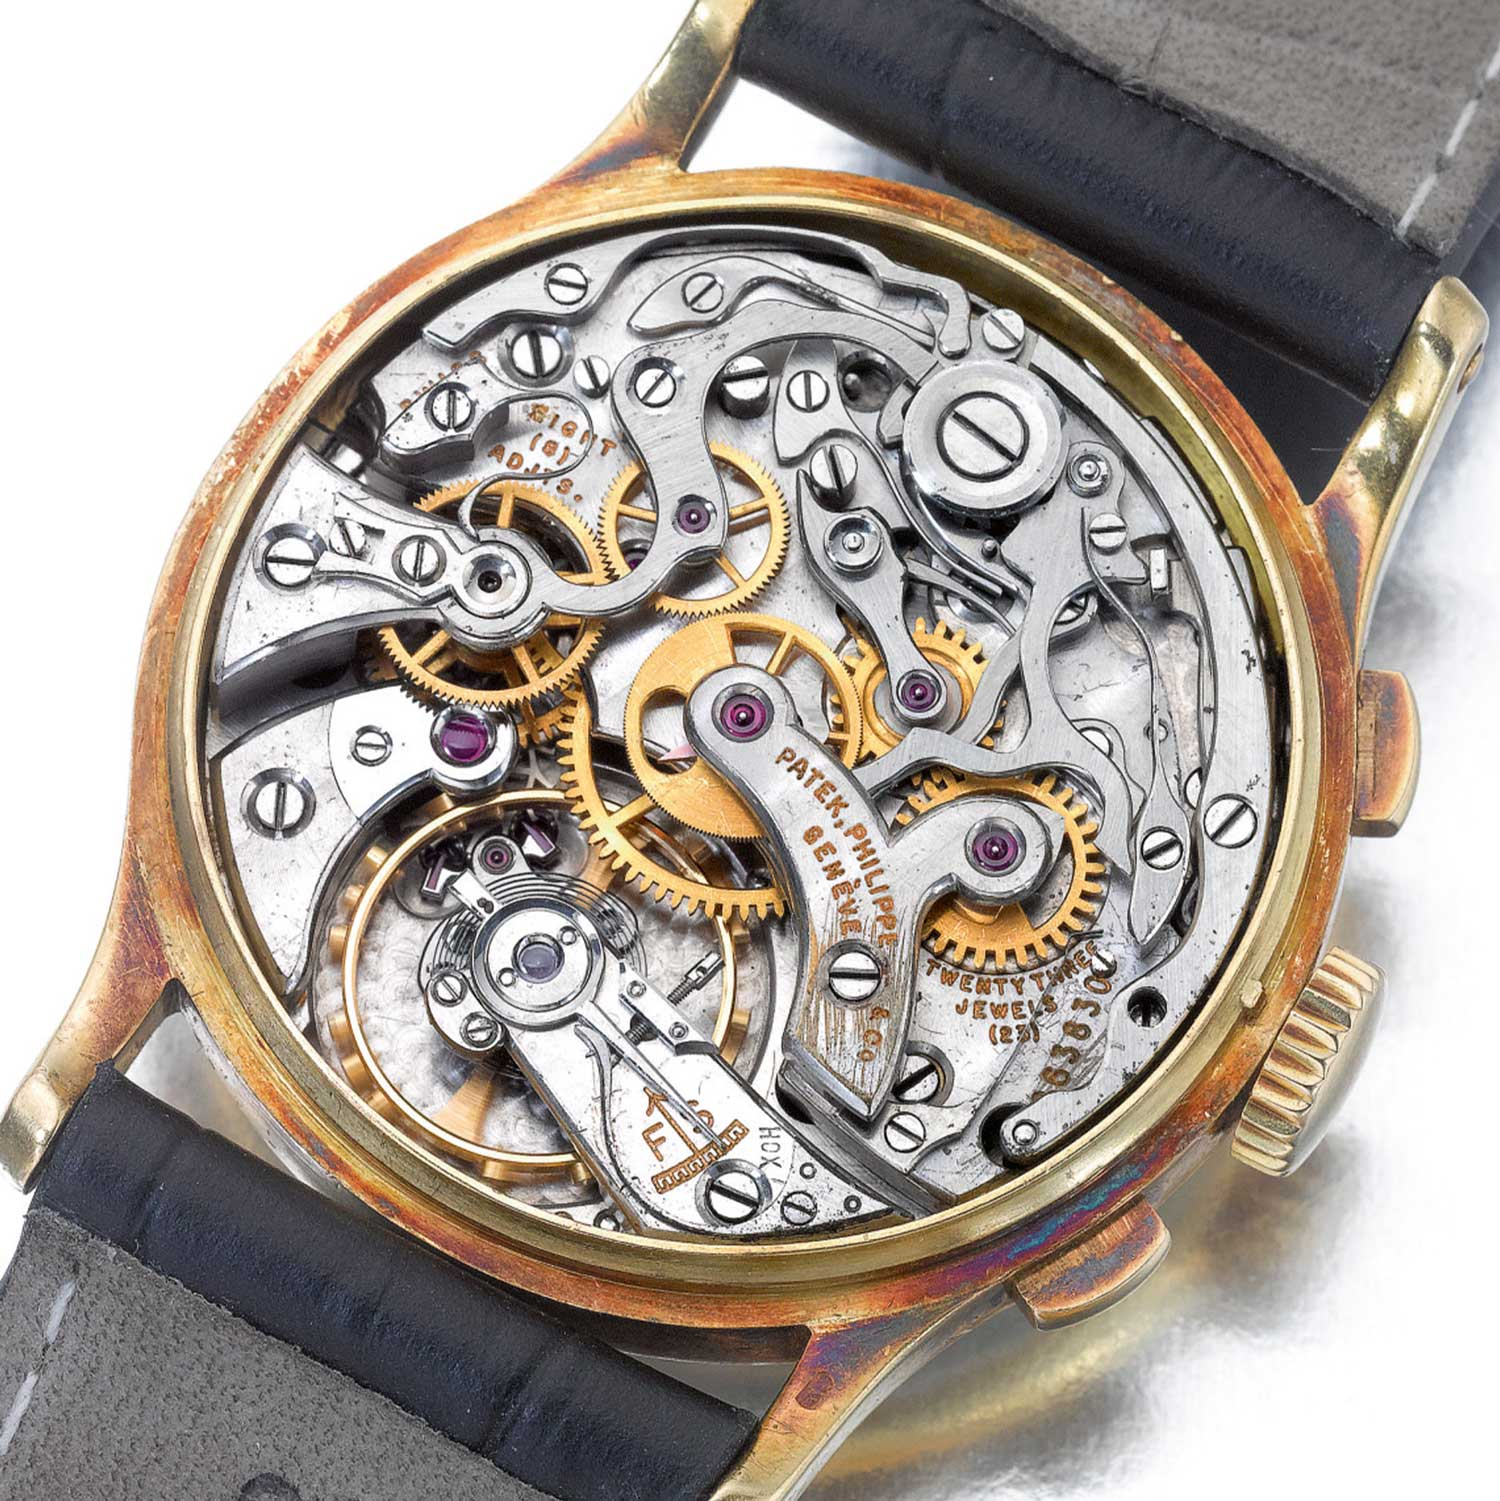 Sans caseback we can see the cal. 13''' manual winding movement powering the 1945 Patek Philippe ref. 130 yellow gold chronograph with applied Breguet hour markers (Image: Sothebys.com)